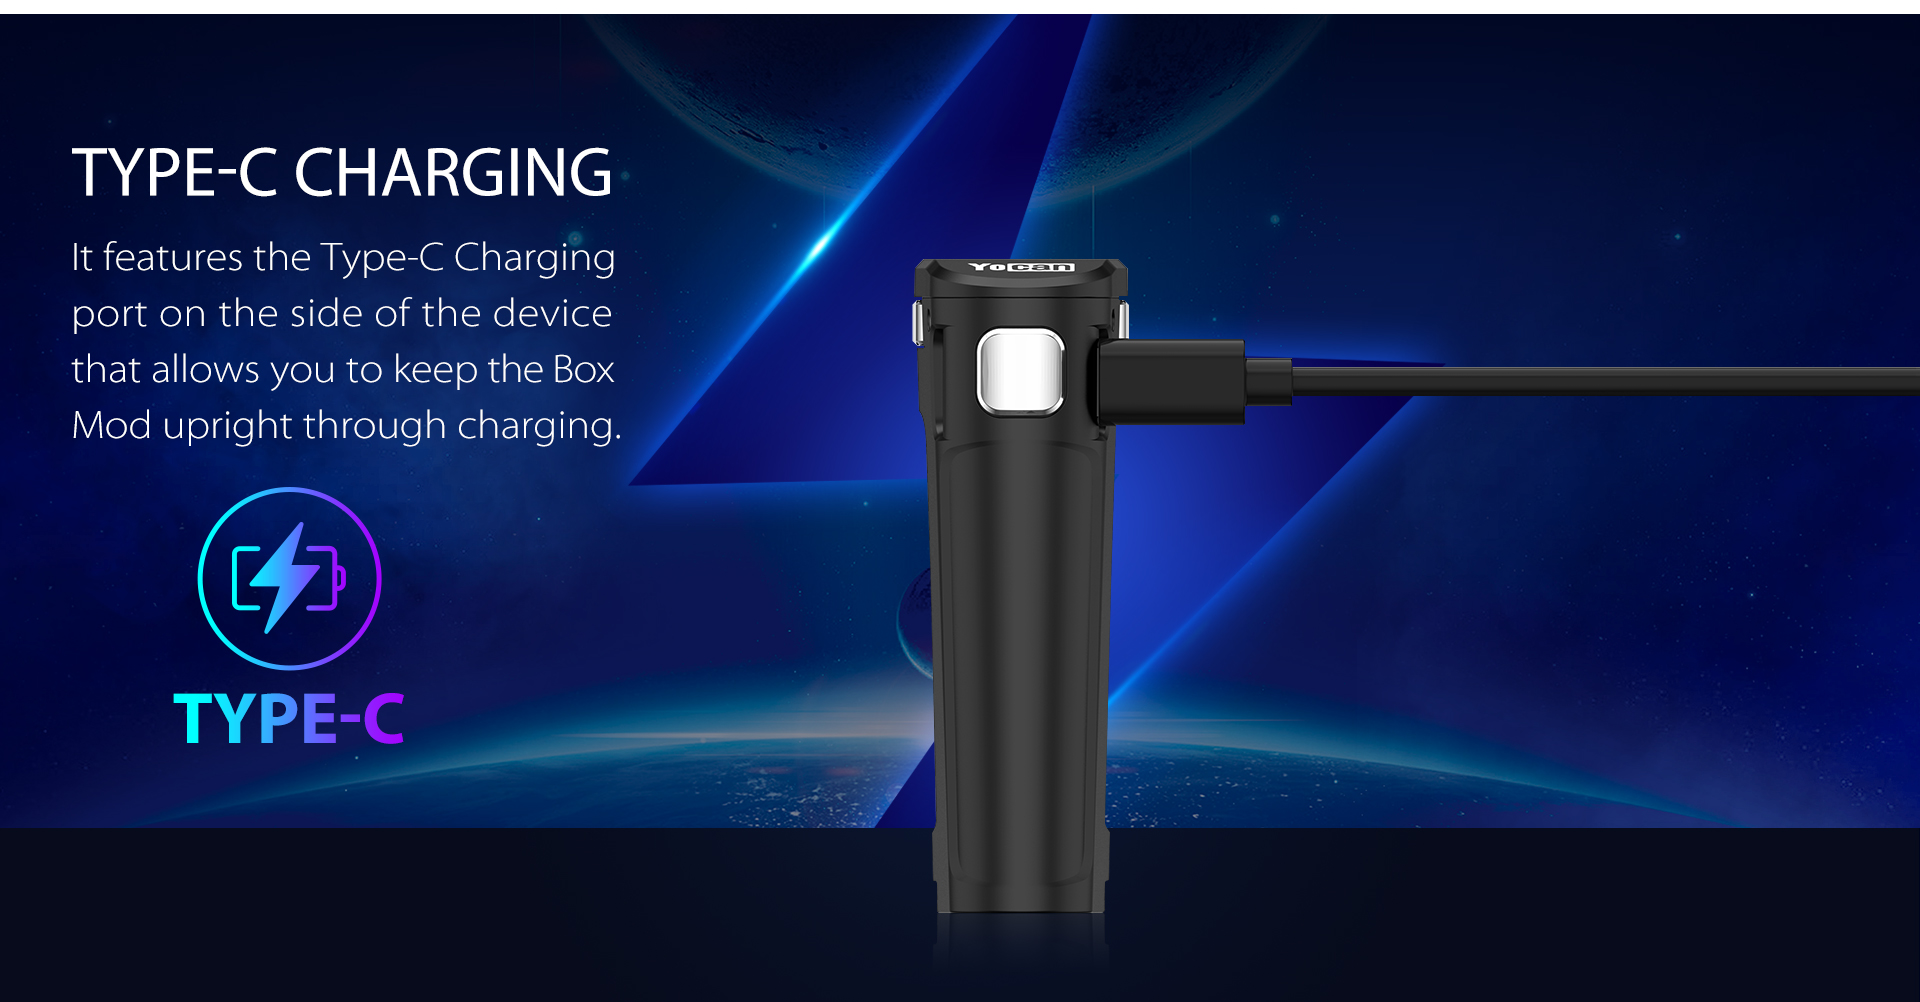 Yocan UNI Twist Universal Portable Mod features the type-c charging port.